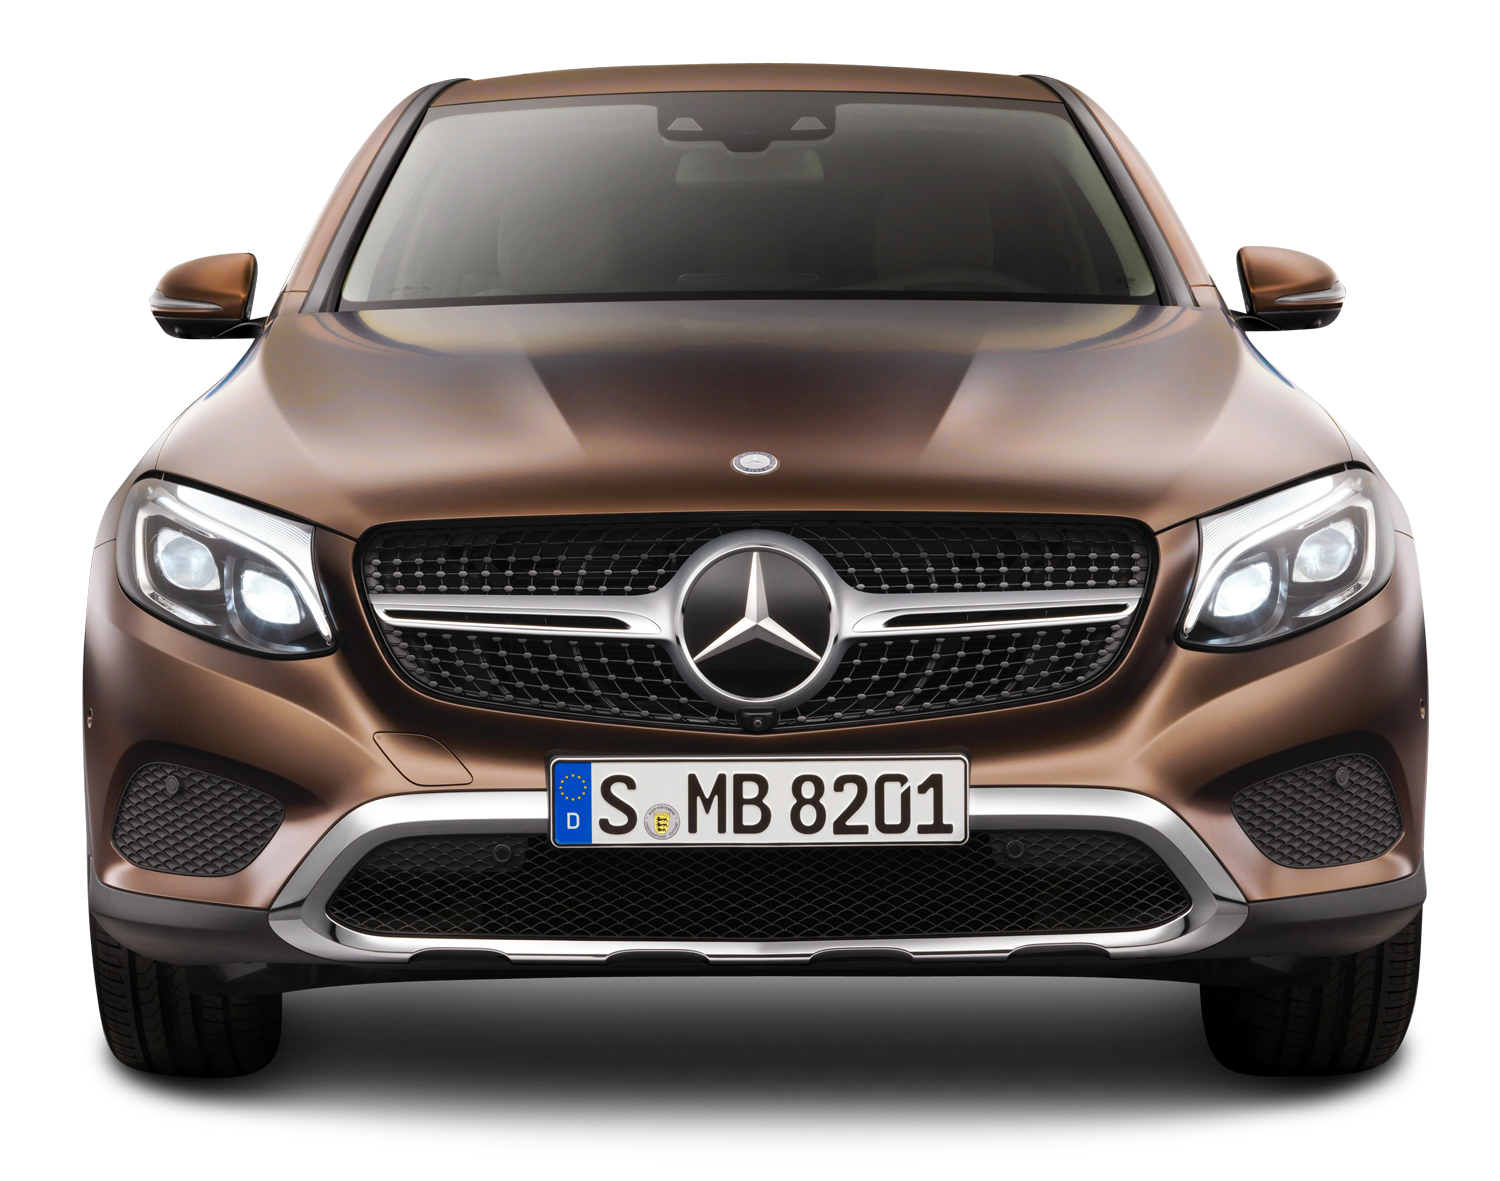 brown mercedes benz gle coupe front view car png image #9304